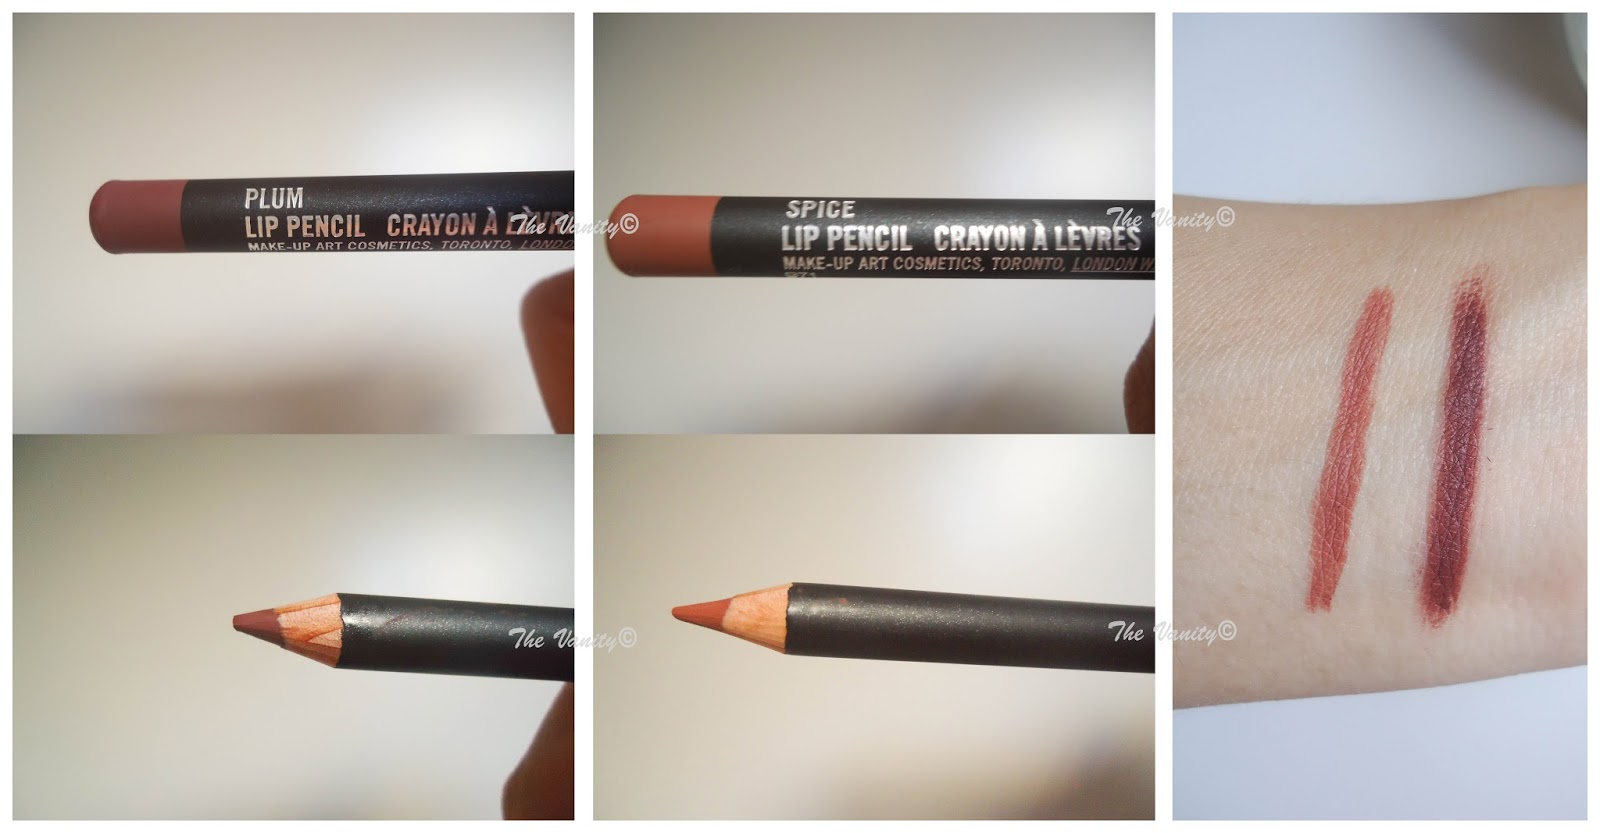 Exceptionnel M.A.C lip liner in Plum and Spice review | The Vanity SO47